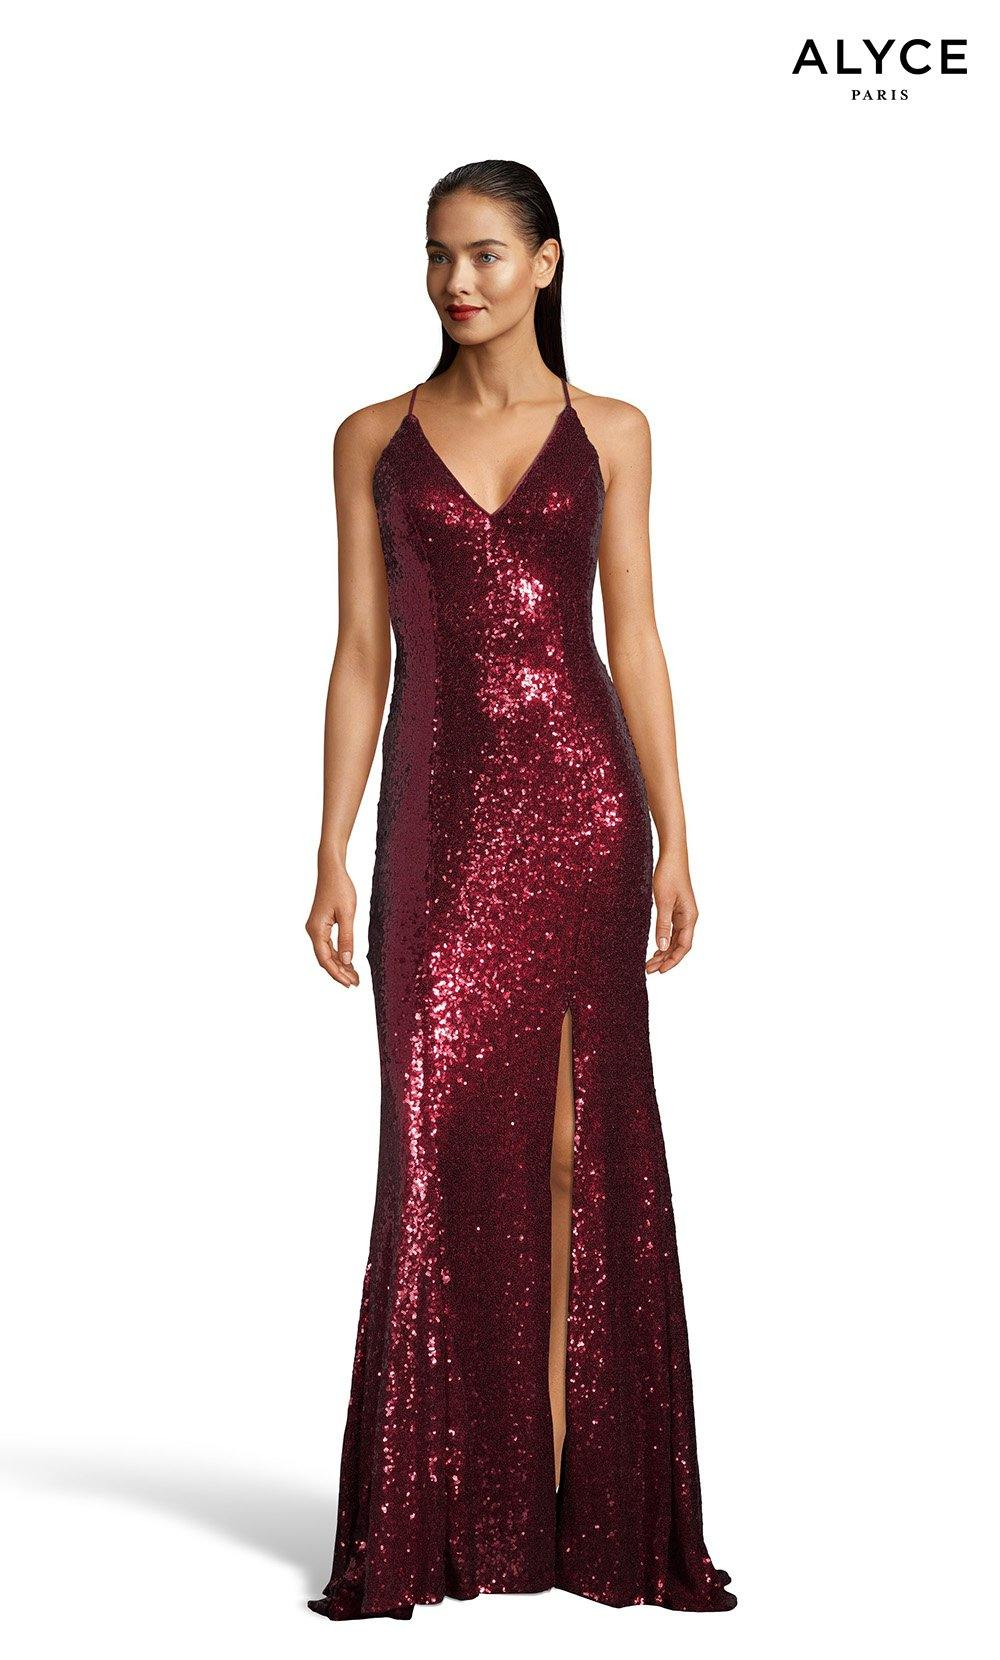 Wine sequin prom dress with a V-neckline and a slit